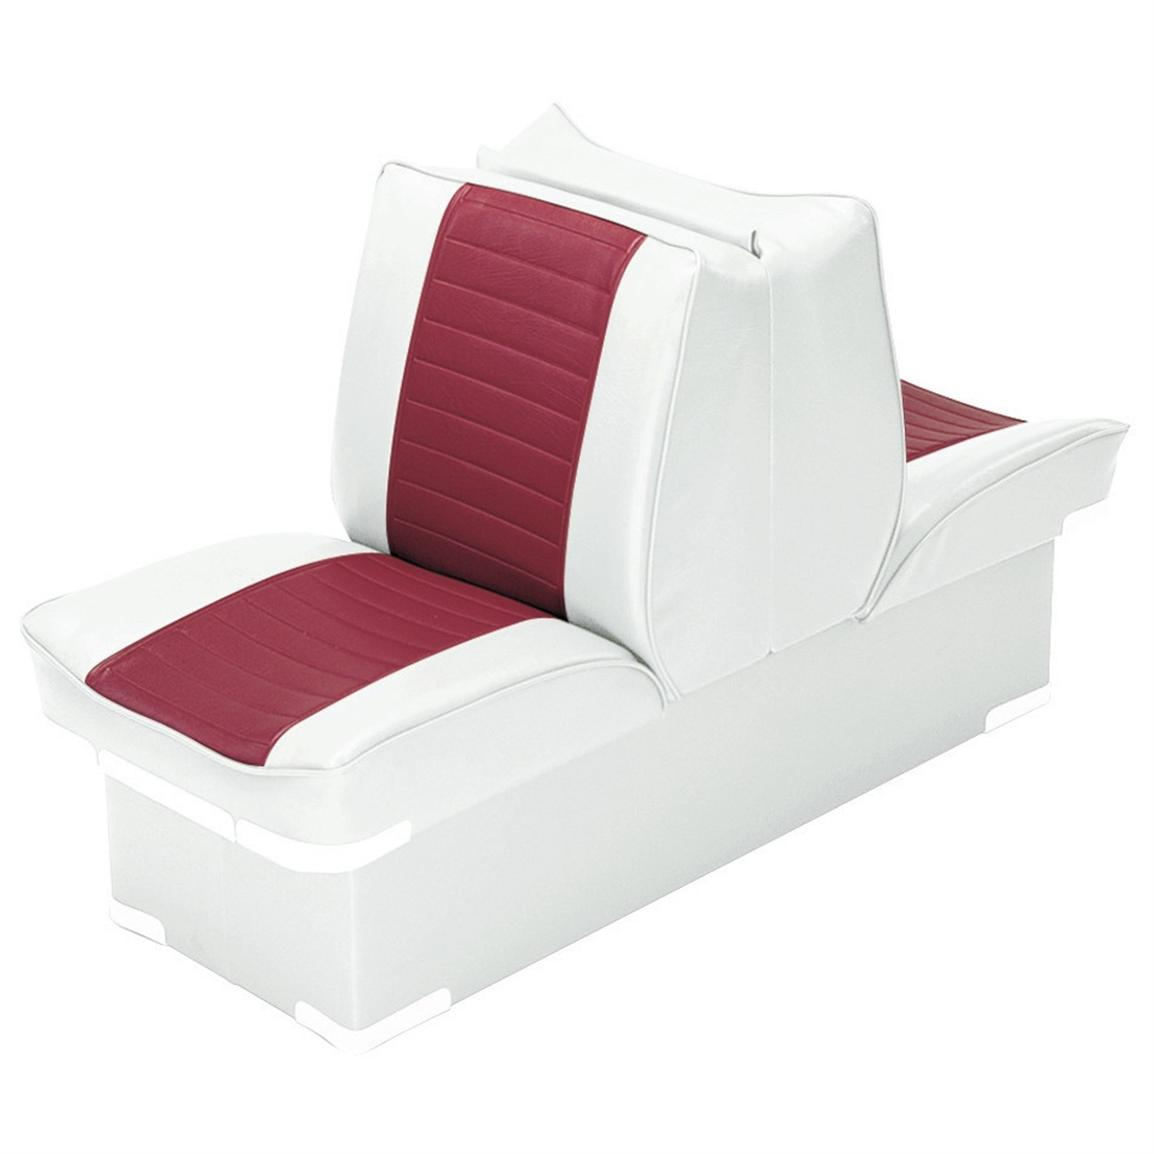 Wise Boat Lounge Seat, White / Red